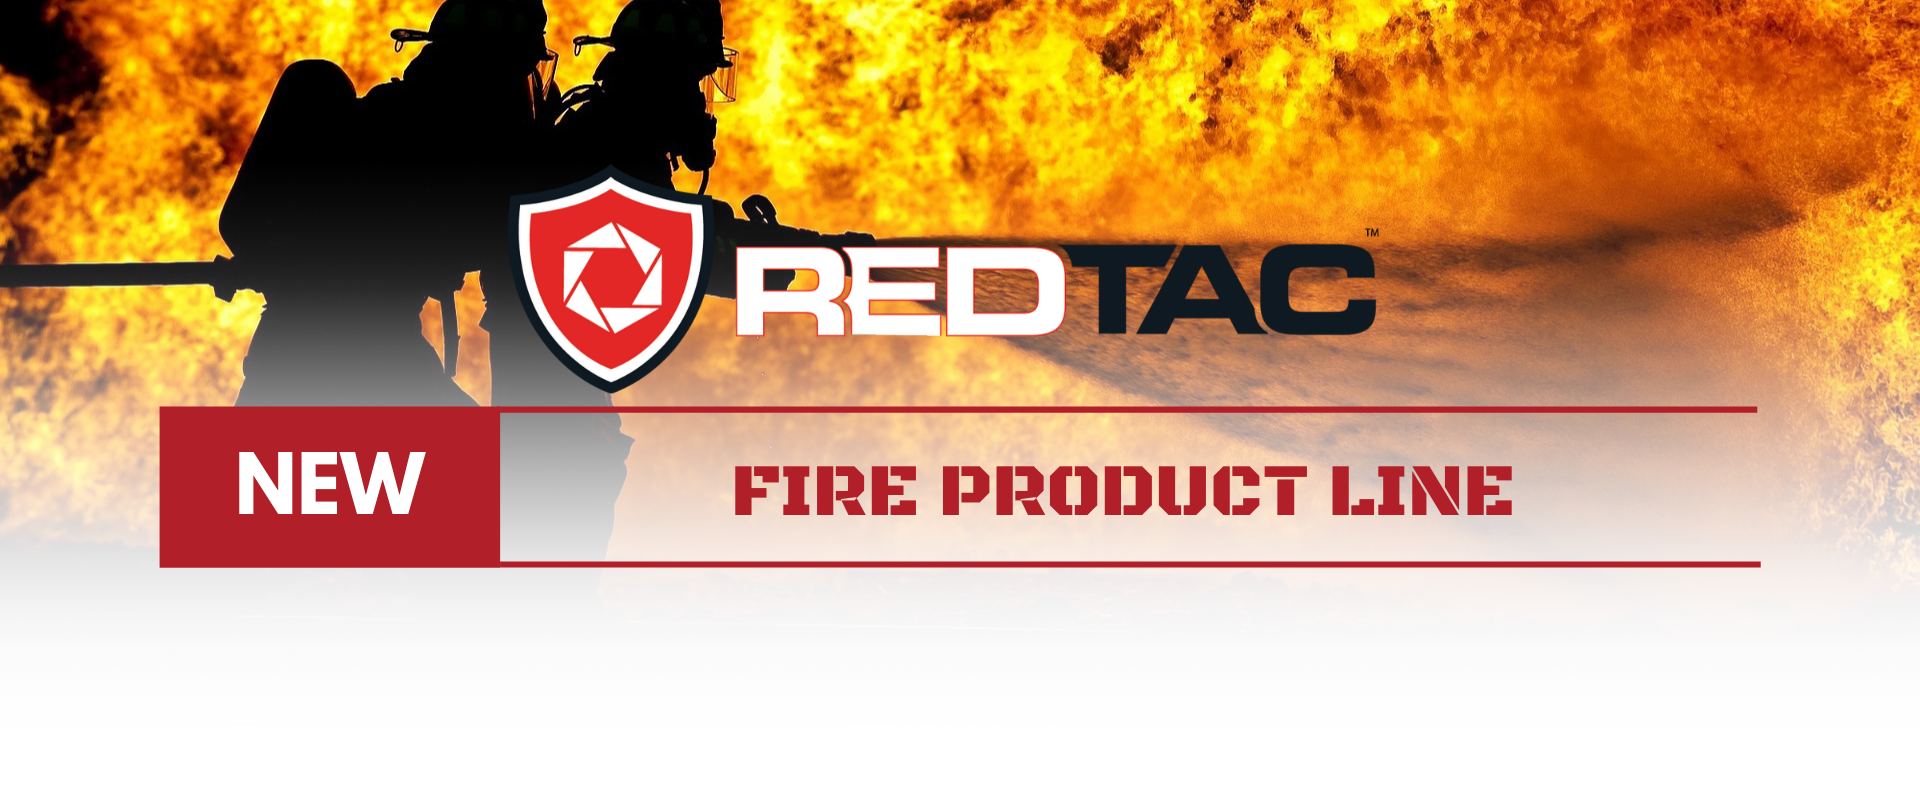 RedTac New Fire Product Line _First Priority Group_FPG